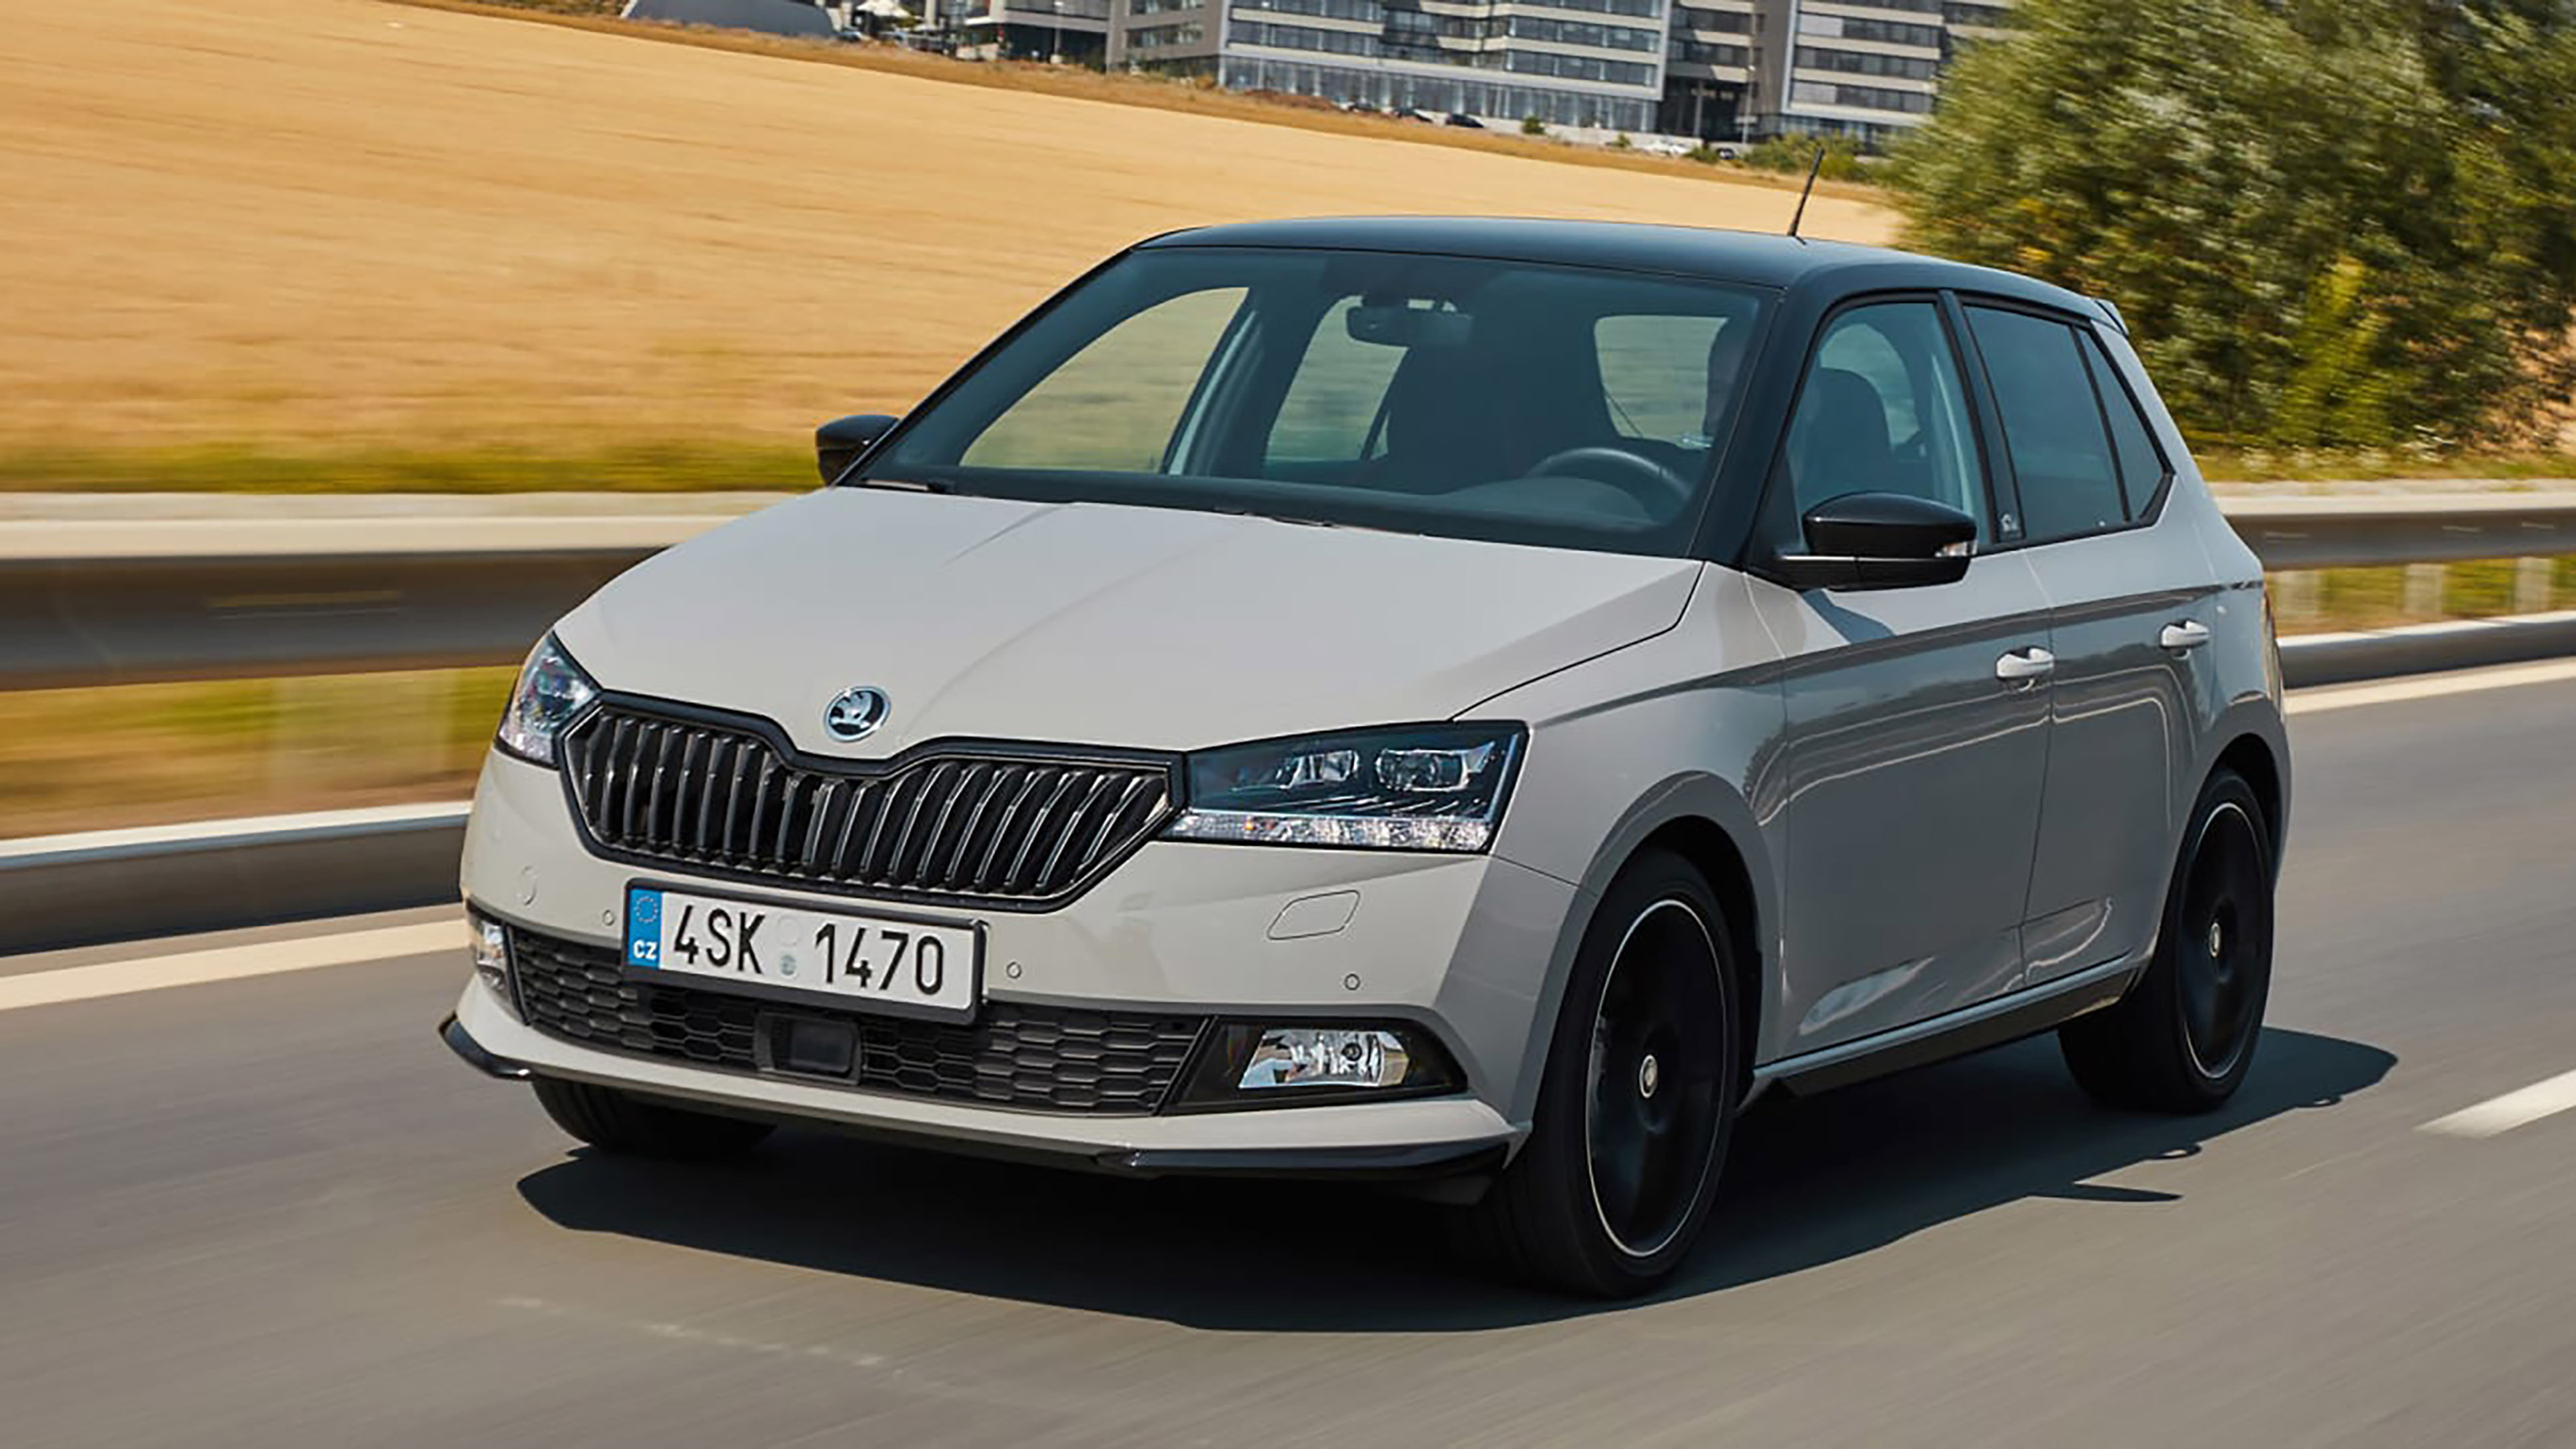 2020 Skoda Fabia Review A Worthy Rival To The Ford Fiesta Evo